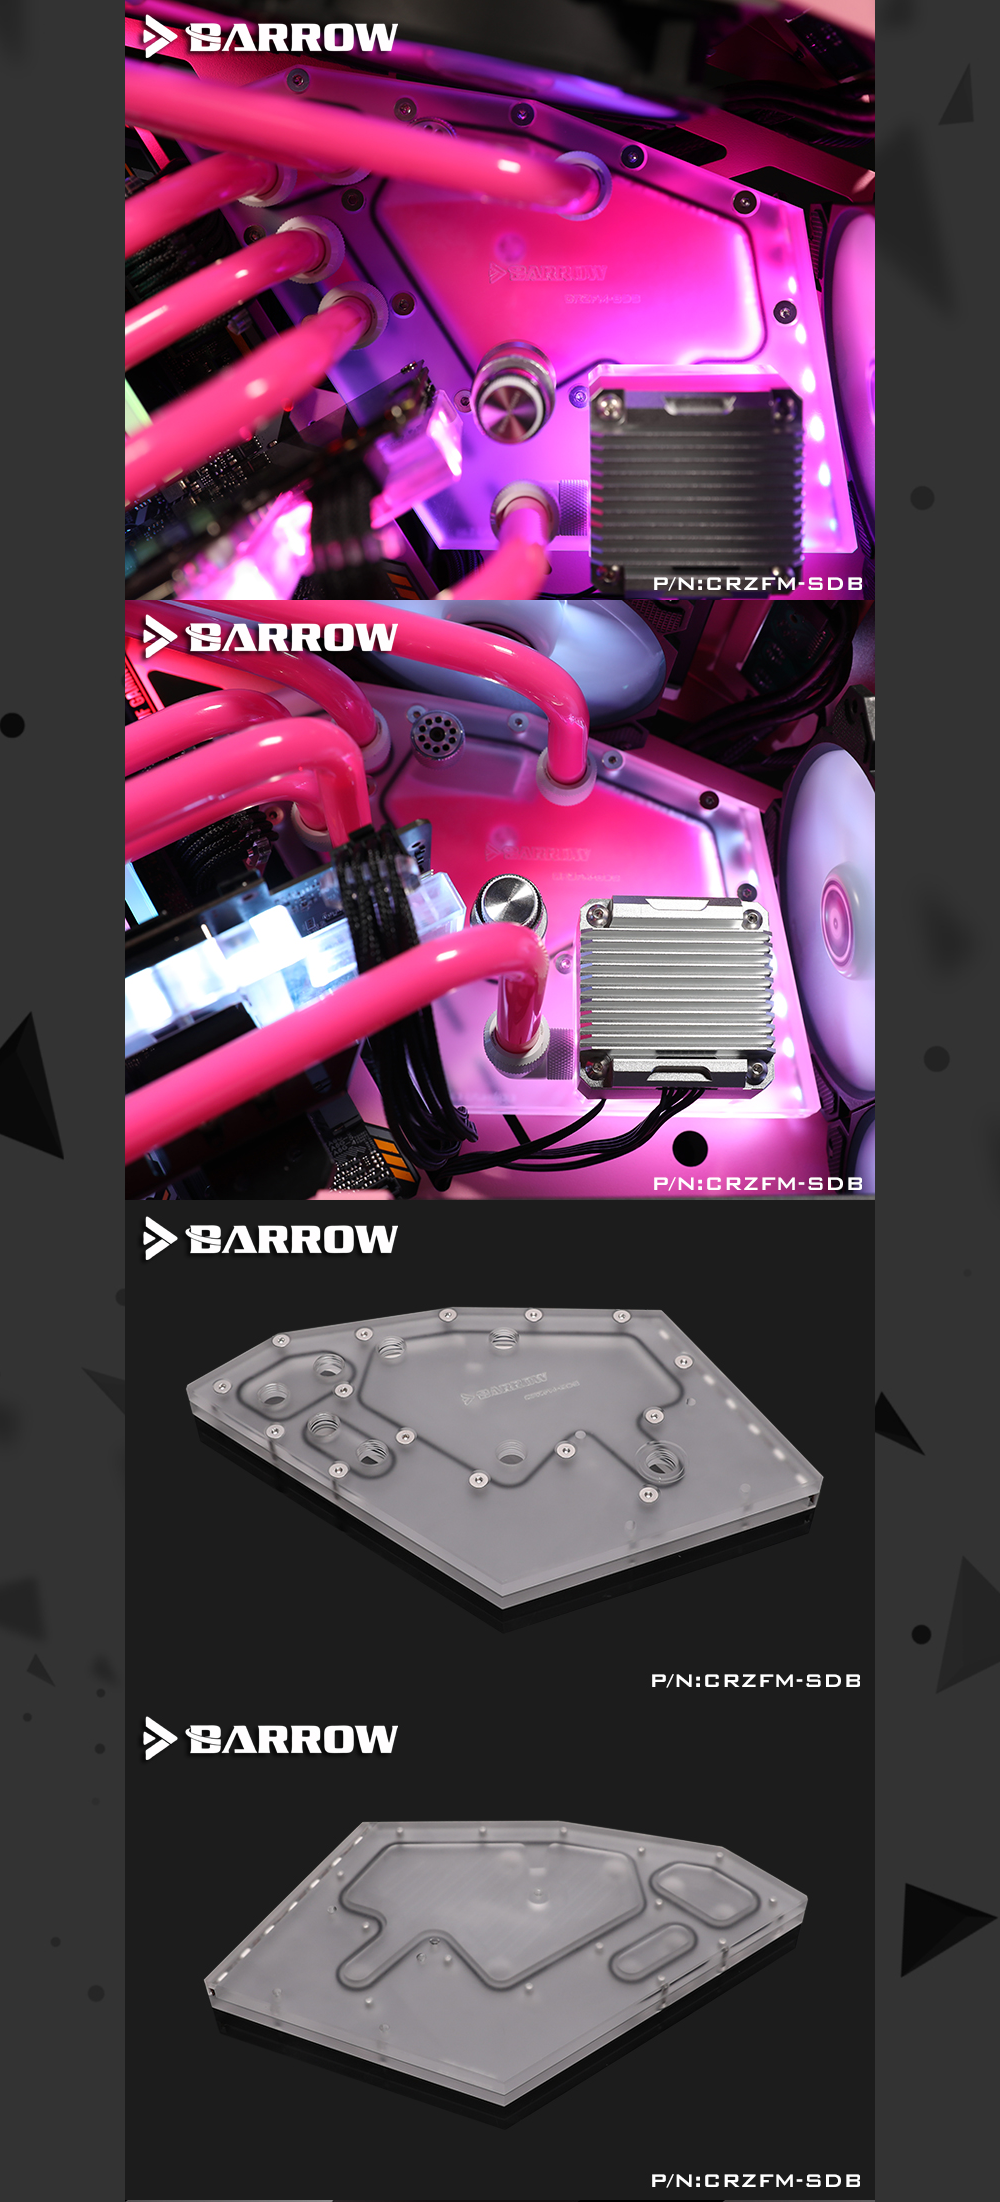 Barrow CRZFM-SDB, Waterway Boards For Cougar Conquer Mini Case, For Intel CPU Water Block & Single GPU Building